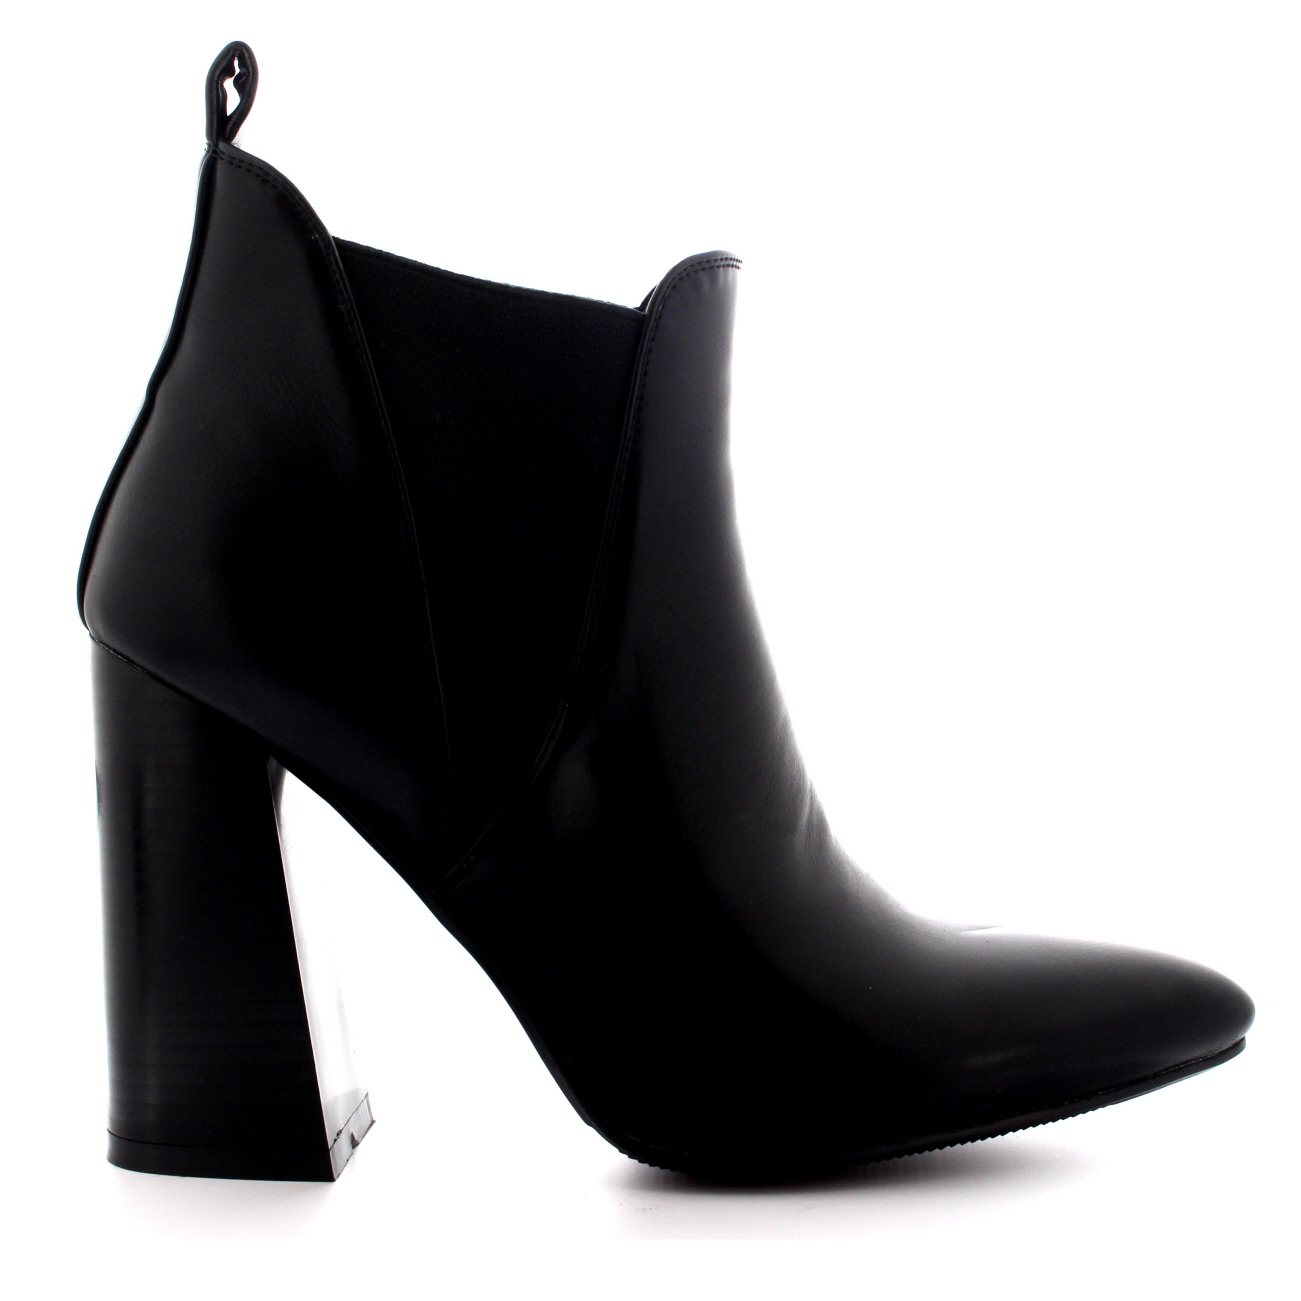 3ff2e7afc02 Details about Ladies Autumn High Heels Pixie Trendy Dress Pointed Toe Ankle  Boots All Sizes